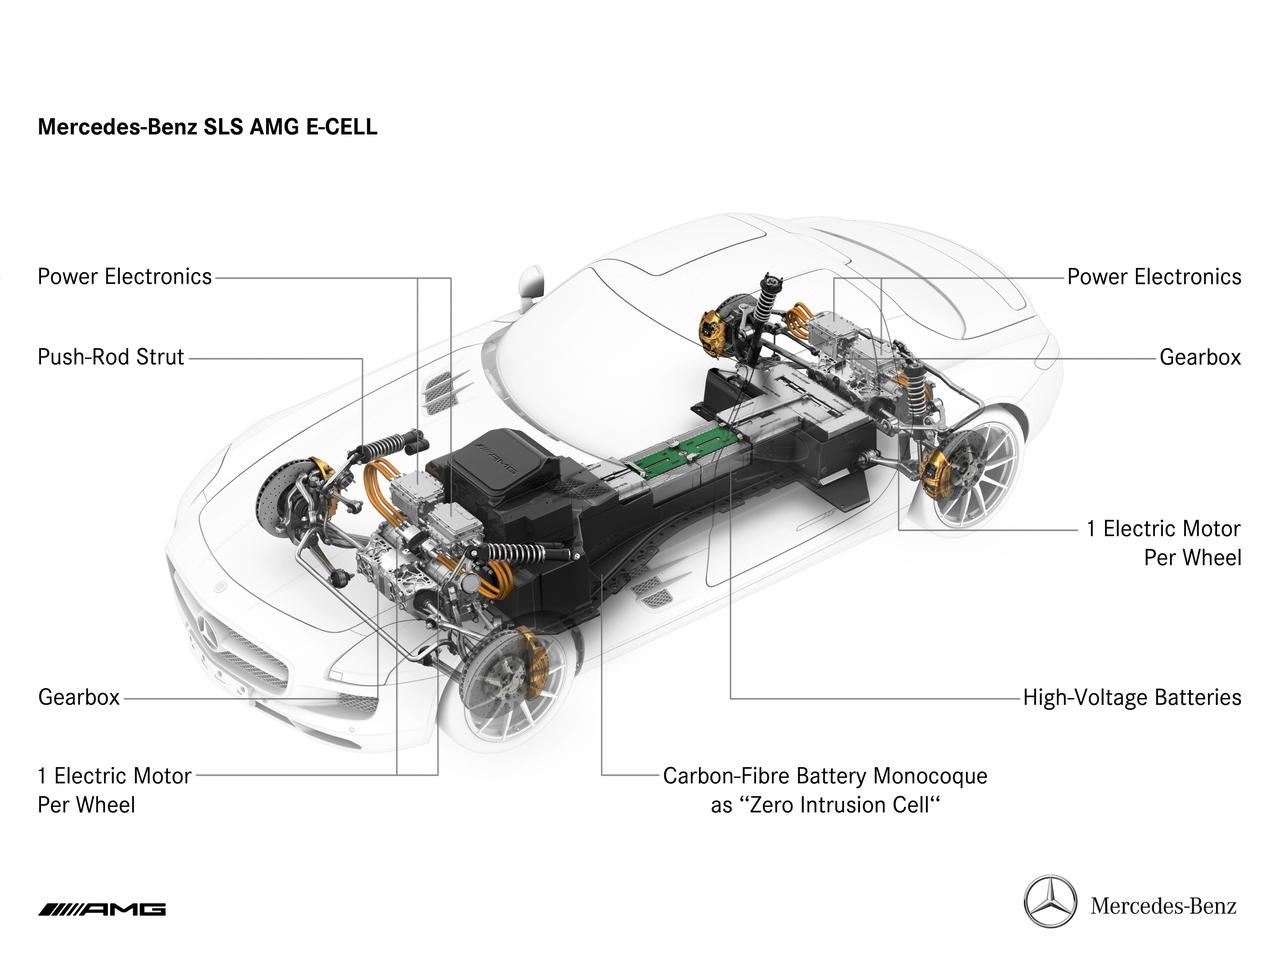 Inside the Mercedes-Benz SLS AMG E-Cell supercar